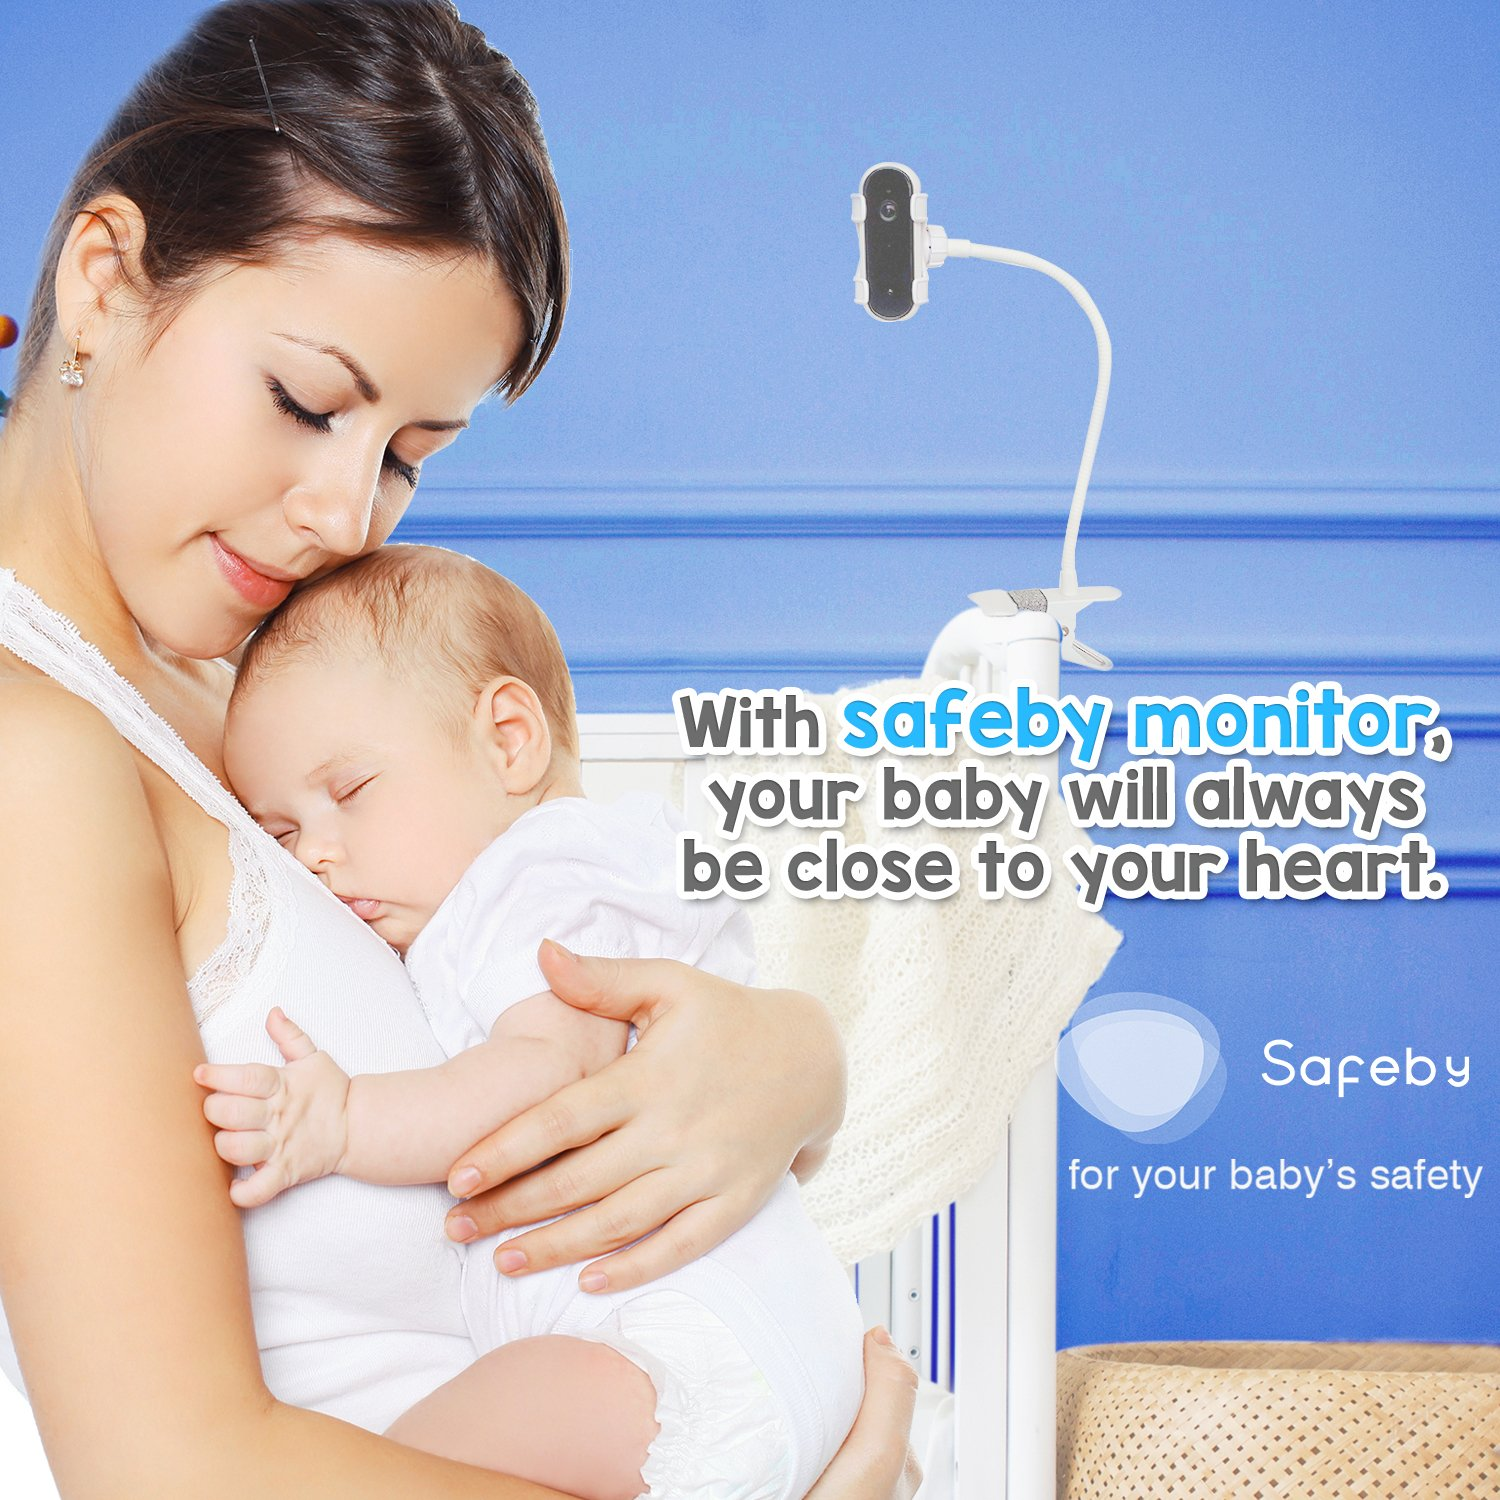 Safeby Video Baby Monitor With Camera And Audio – Crib Mount, iPhone Compatible, HD, Two-Way Talk, InfraRed, Night Vision, Portable WiFi Nanny Cam, App for Any Smart Phone, Unlimited Range Easy Set-Up by Safeby (Image #2)